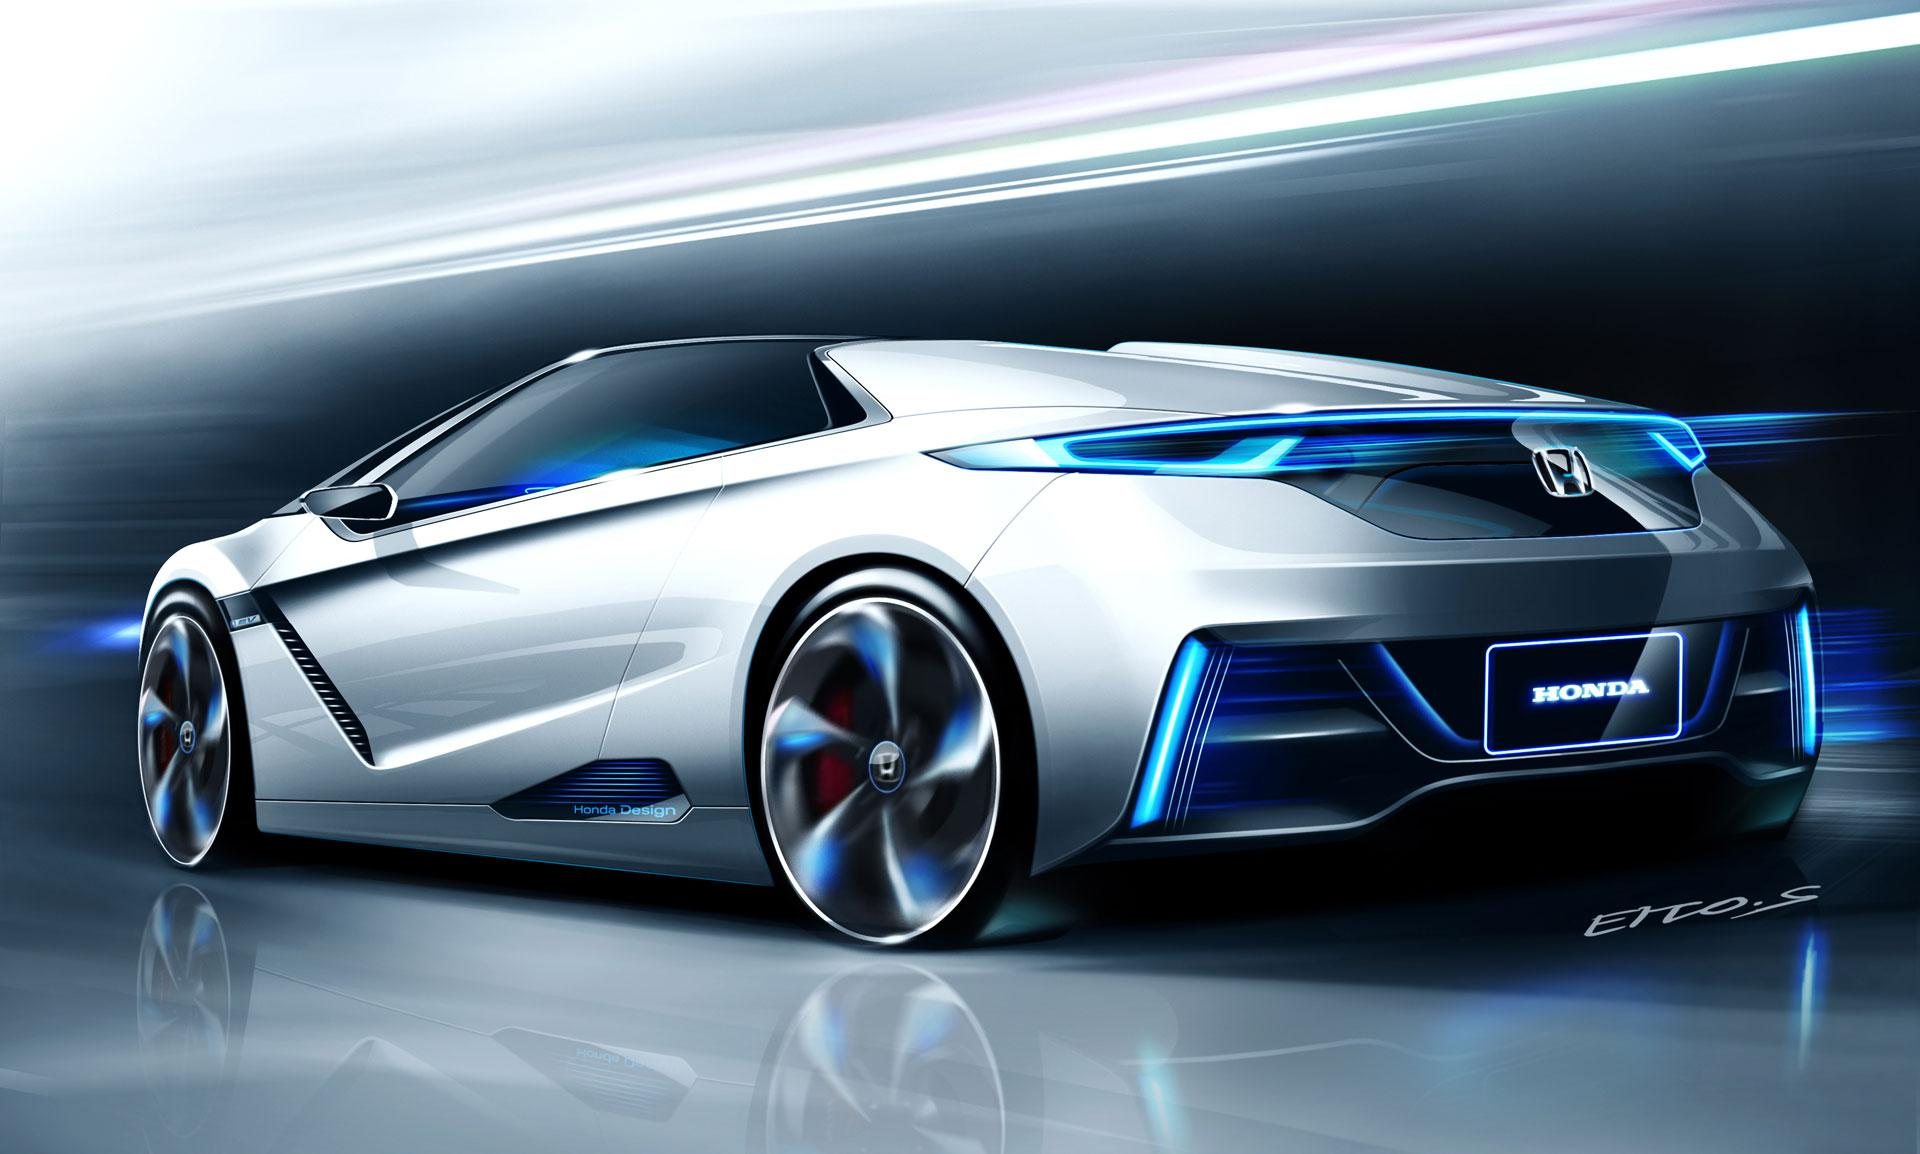 Honda EV-STER Concept Design Sketch - Car Body Design